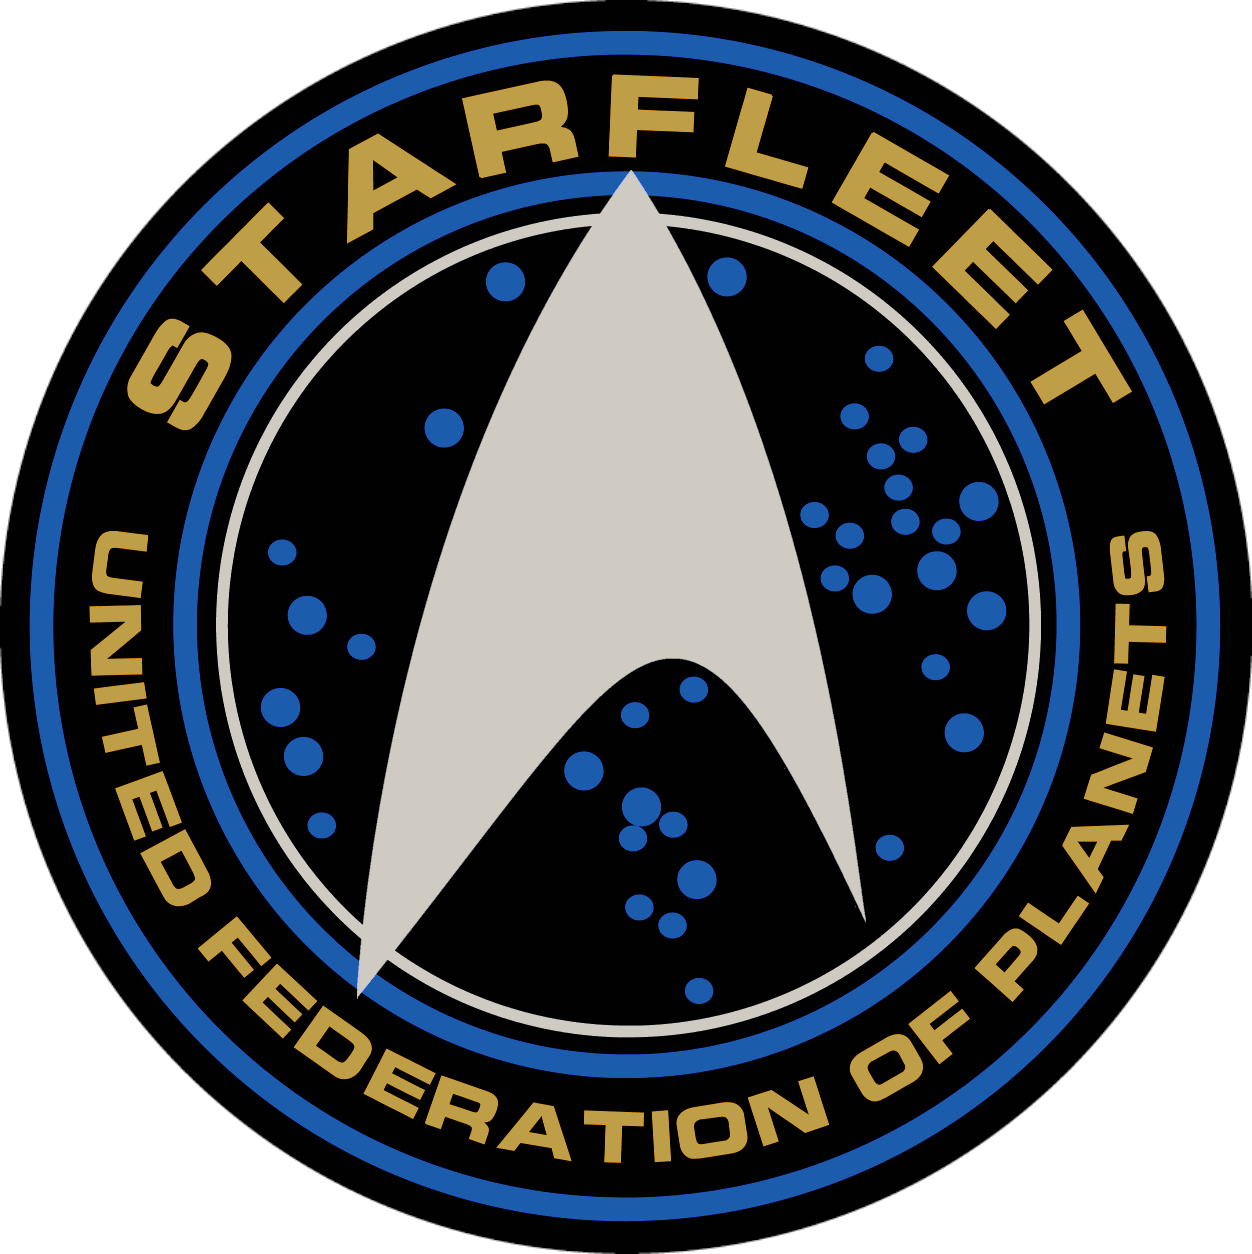 Starfleet_insignia on Star Trek Federation Klingon Romulan Fleet